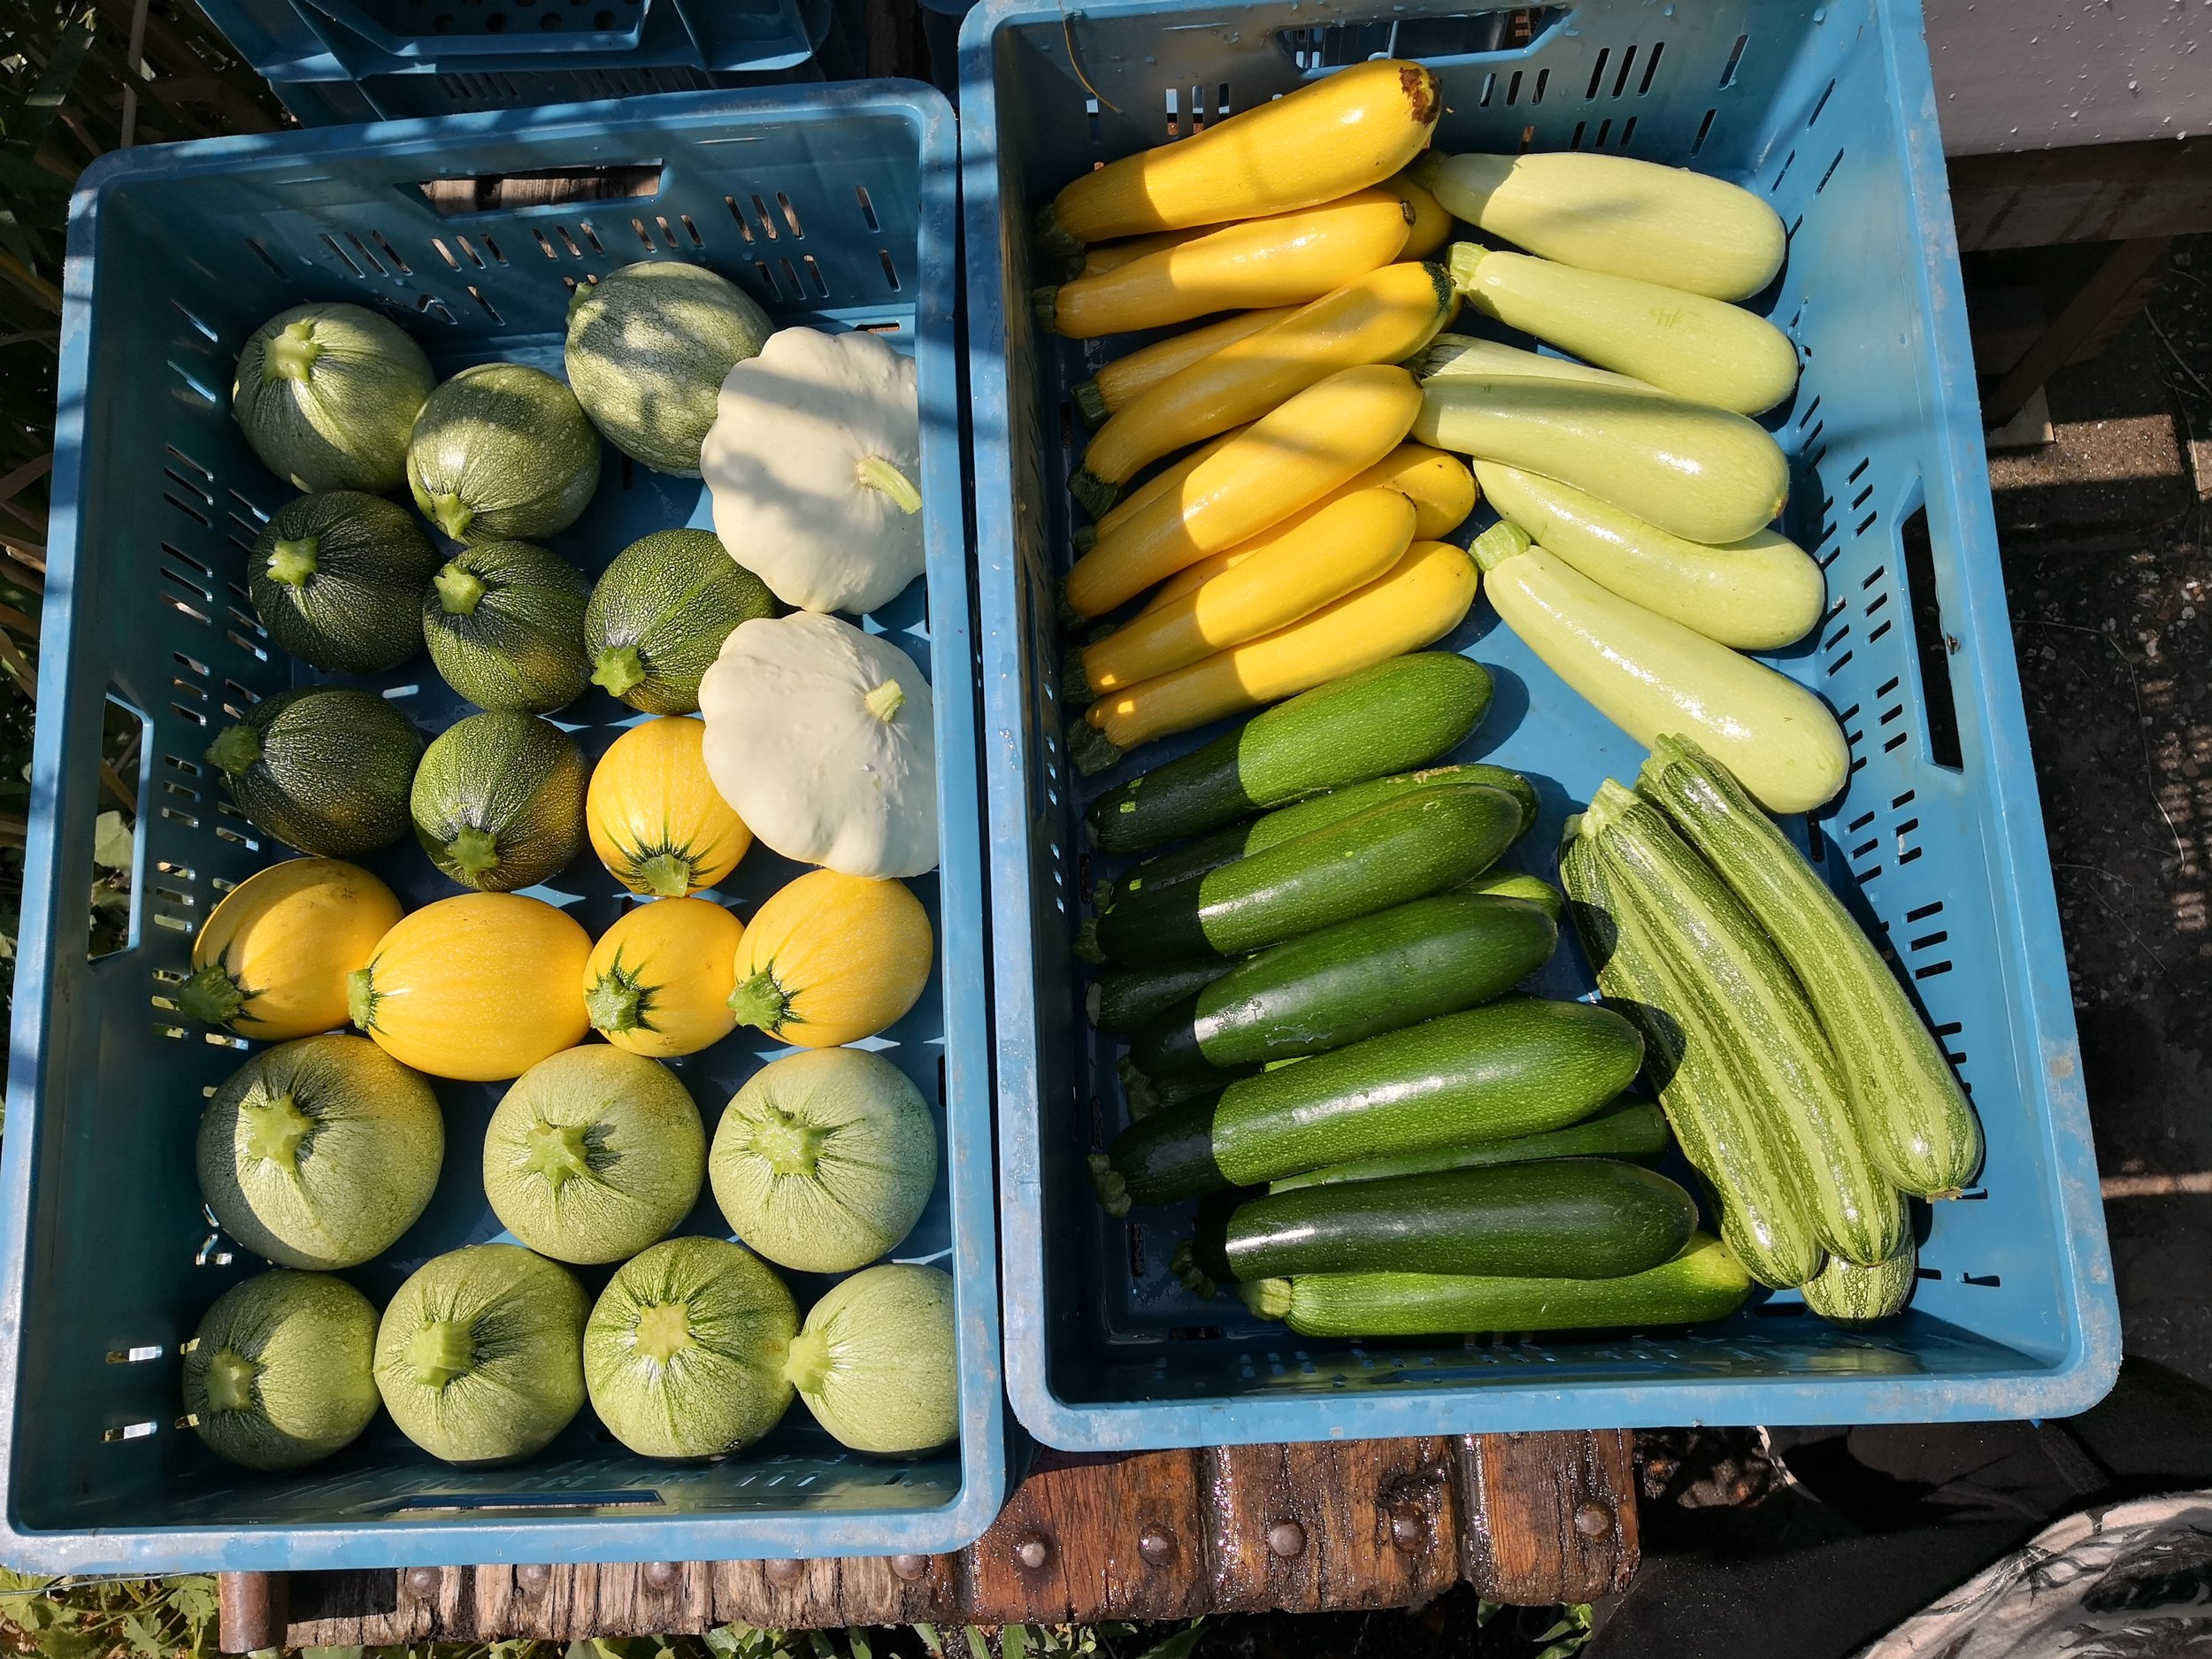 07-18 courgettes.jpg